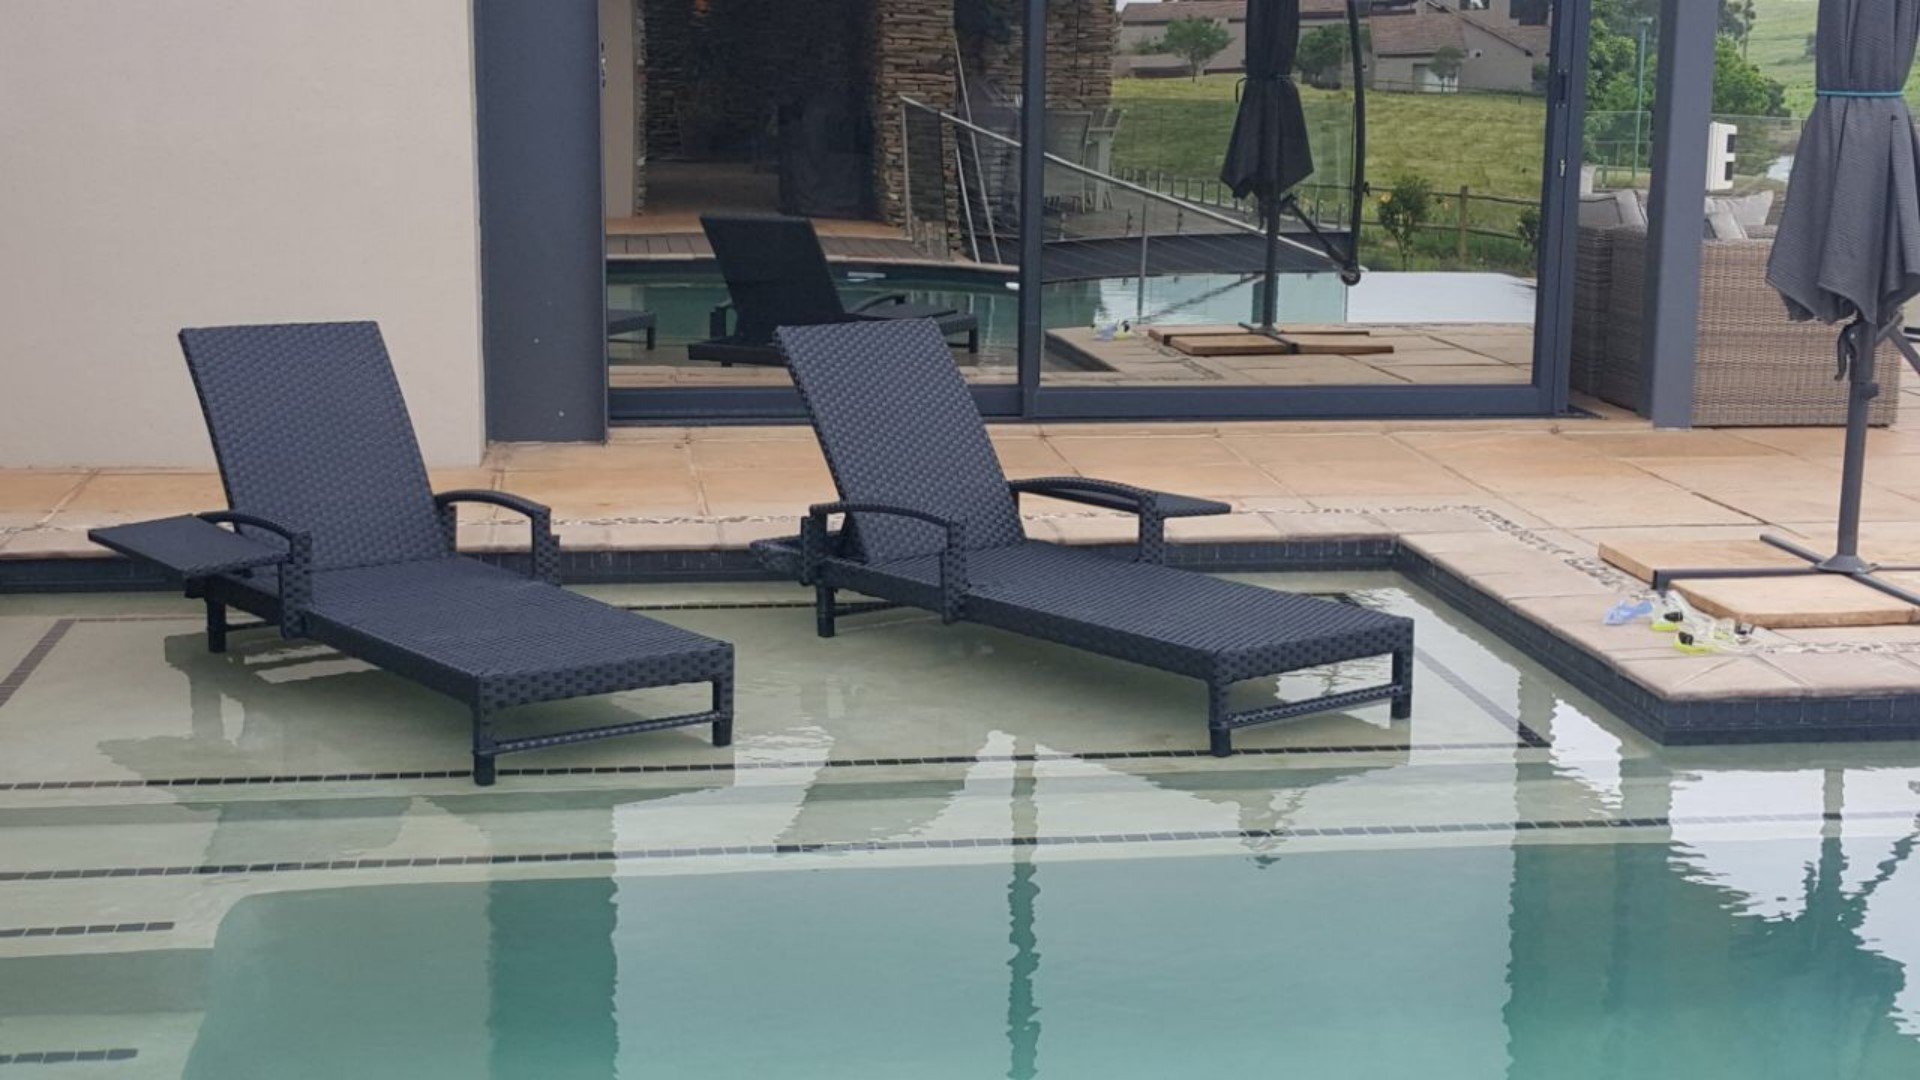 All weather outdoor lounger with tray